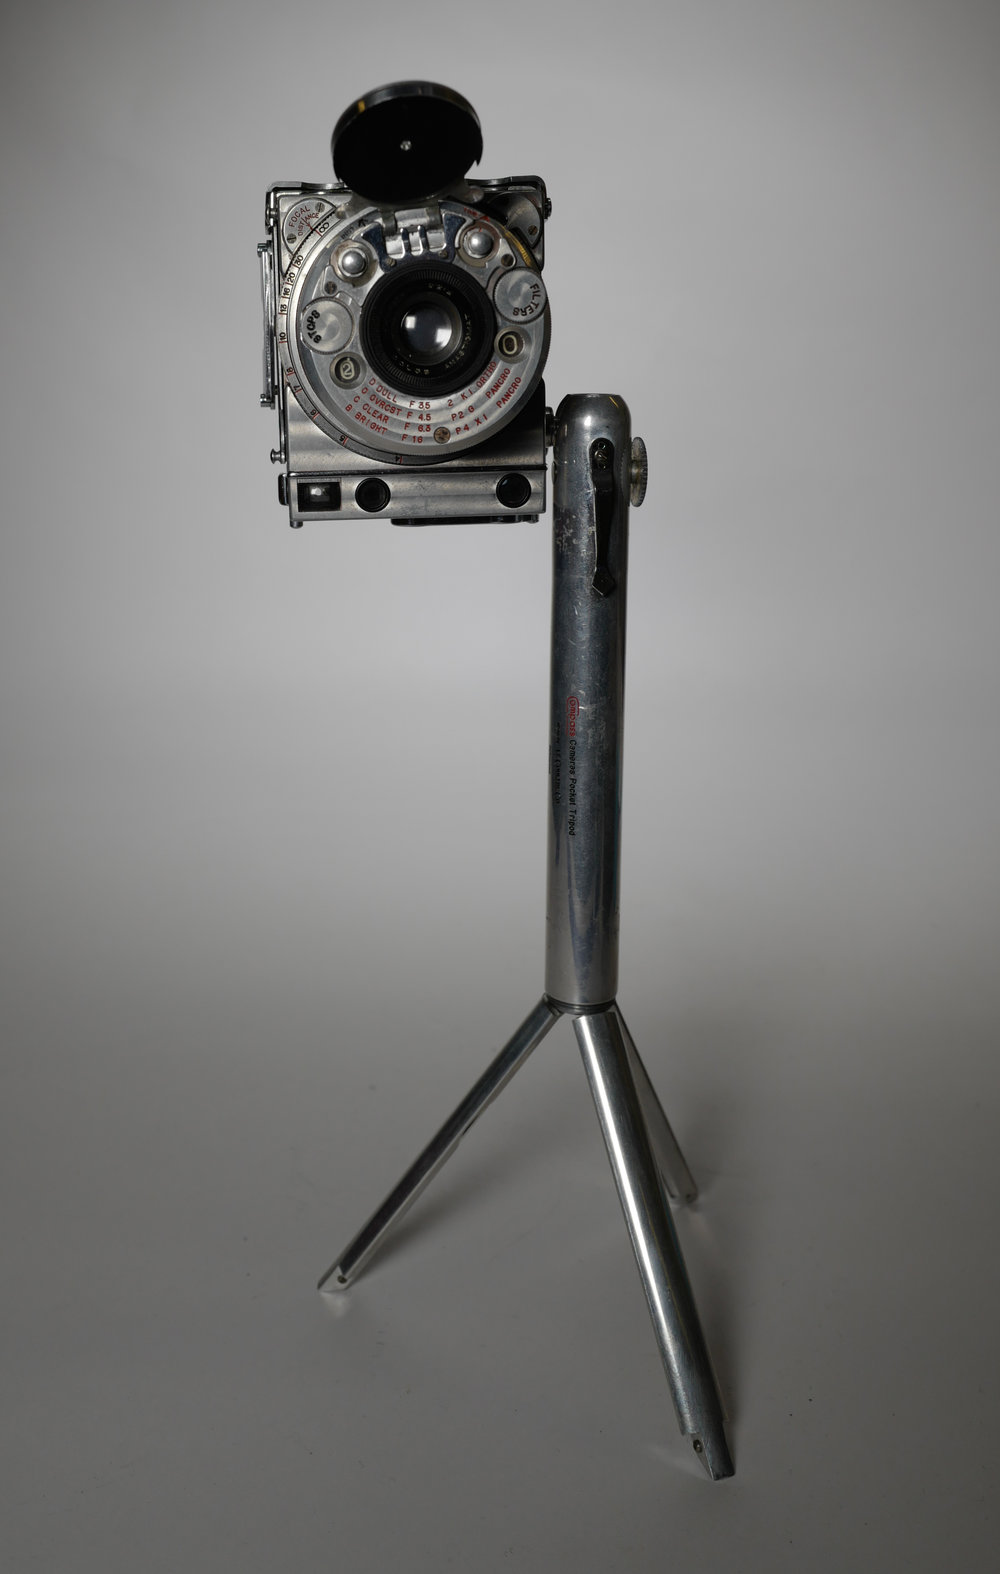 The LeCoultre Compass on its special mini tripod accessory